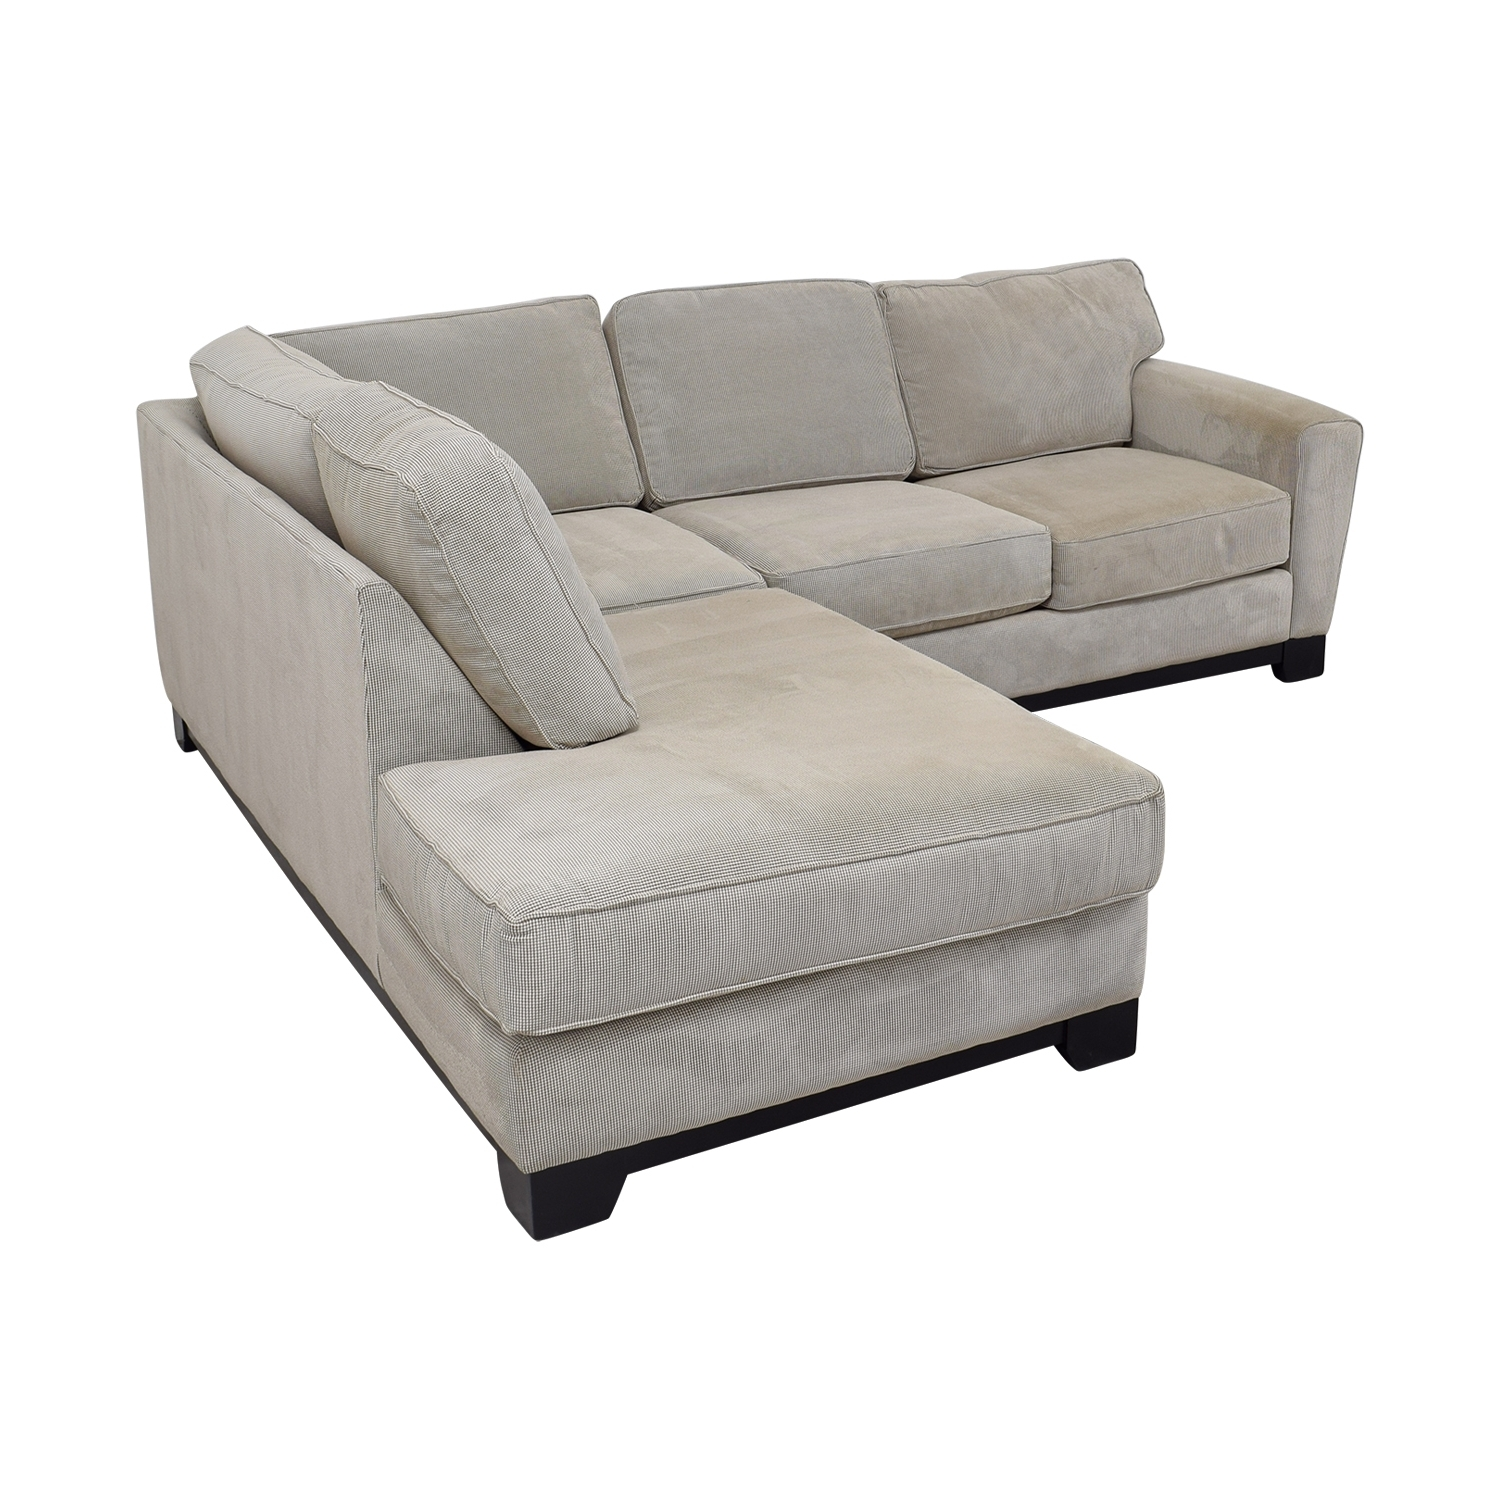 [%82% Off – Jordan's Furniture Jordan's Furniture Beige L Shaped Inside Latest Jordans Sectional Sofas|Jordans Sectional Sofas Inside Preferred 82% Off – Jordan's Furniture Jordan's Furniture Beige L Shaped|2018 Jordans Sectional Sofas Regarding 82% Off – Jordan's Furniture Jordan's Furniture Beige L Shaped|2019 82% Off – Jordan's Furniture Jordan's Furniture Beige L Shaped Intended For Jordans Sectional Sofas%] (View 2 of 20)